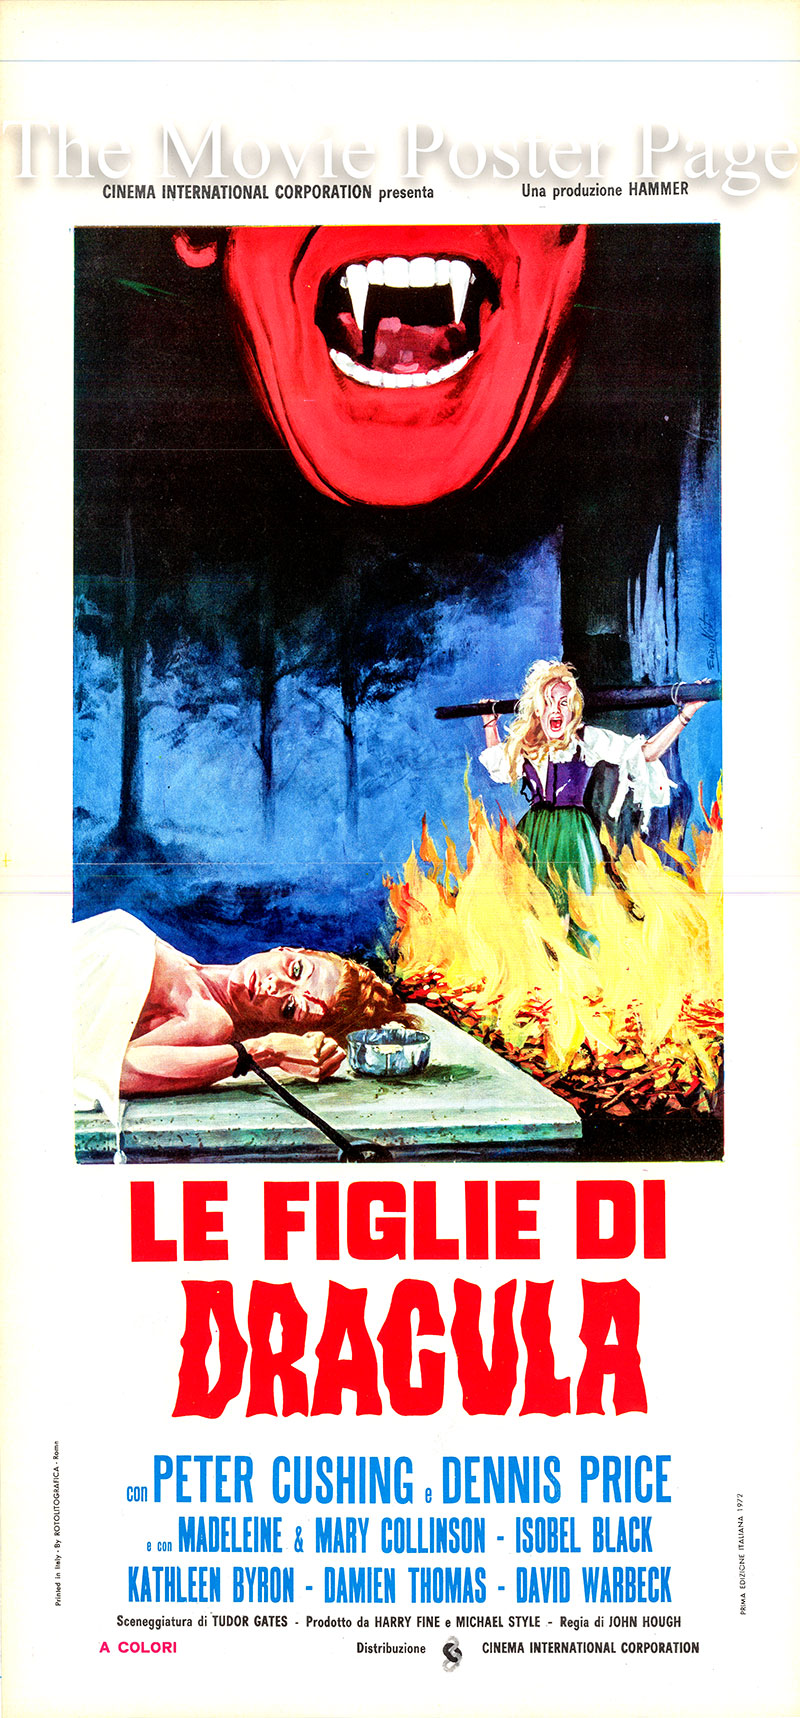 Pictured is an Italian locandina poster for the 1971 John Hough film <i>Twins of Evil</i> based on a screenplay by Tudor Gates and starring Peter Cushing as Gustav Weil.